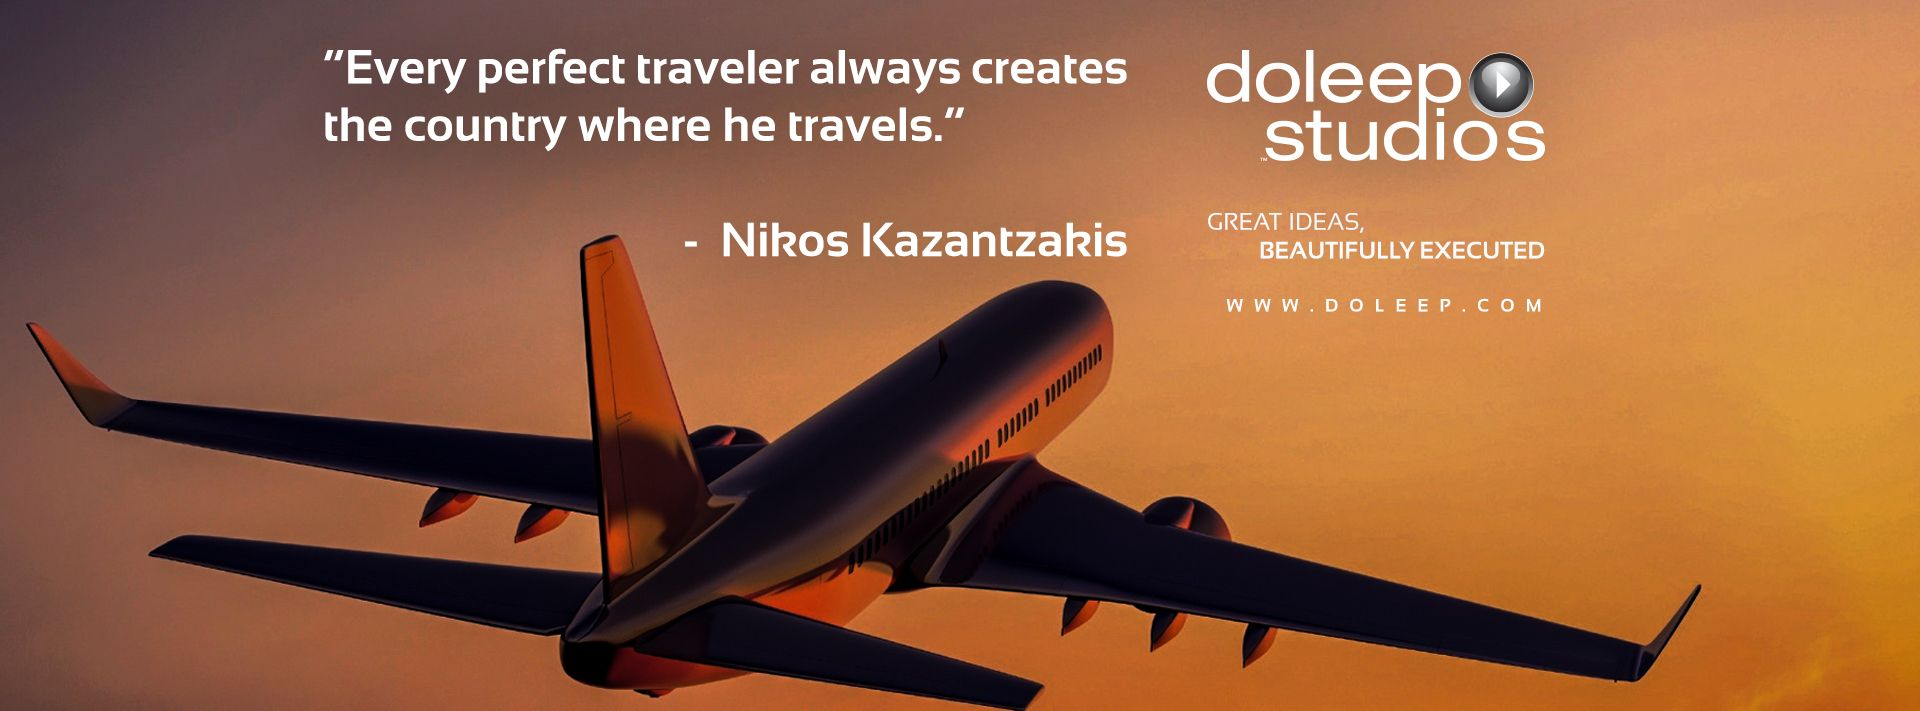 """""""Every perfect traveler always creates the country where he travels.""""  #business #entrepreneur #fortune #leadership #CEO #achievement #greatideas #quote #vision #foresight #success #quality #motivation #inspiration #inspirationalquotes #domore #dubai#abudhabi #uae www.doleep.com"""